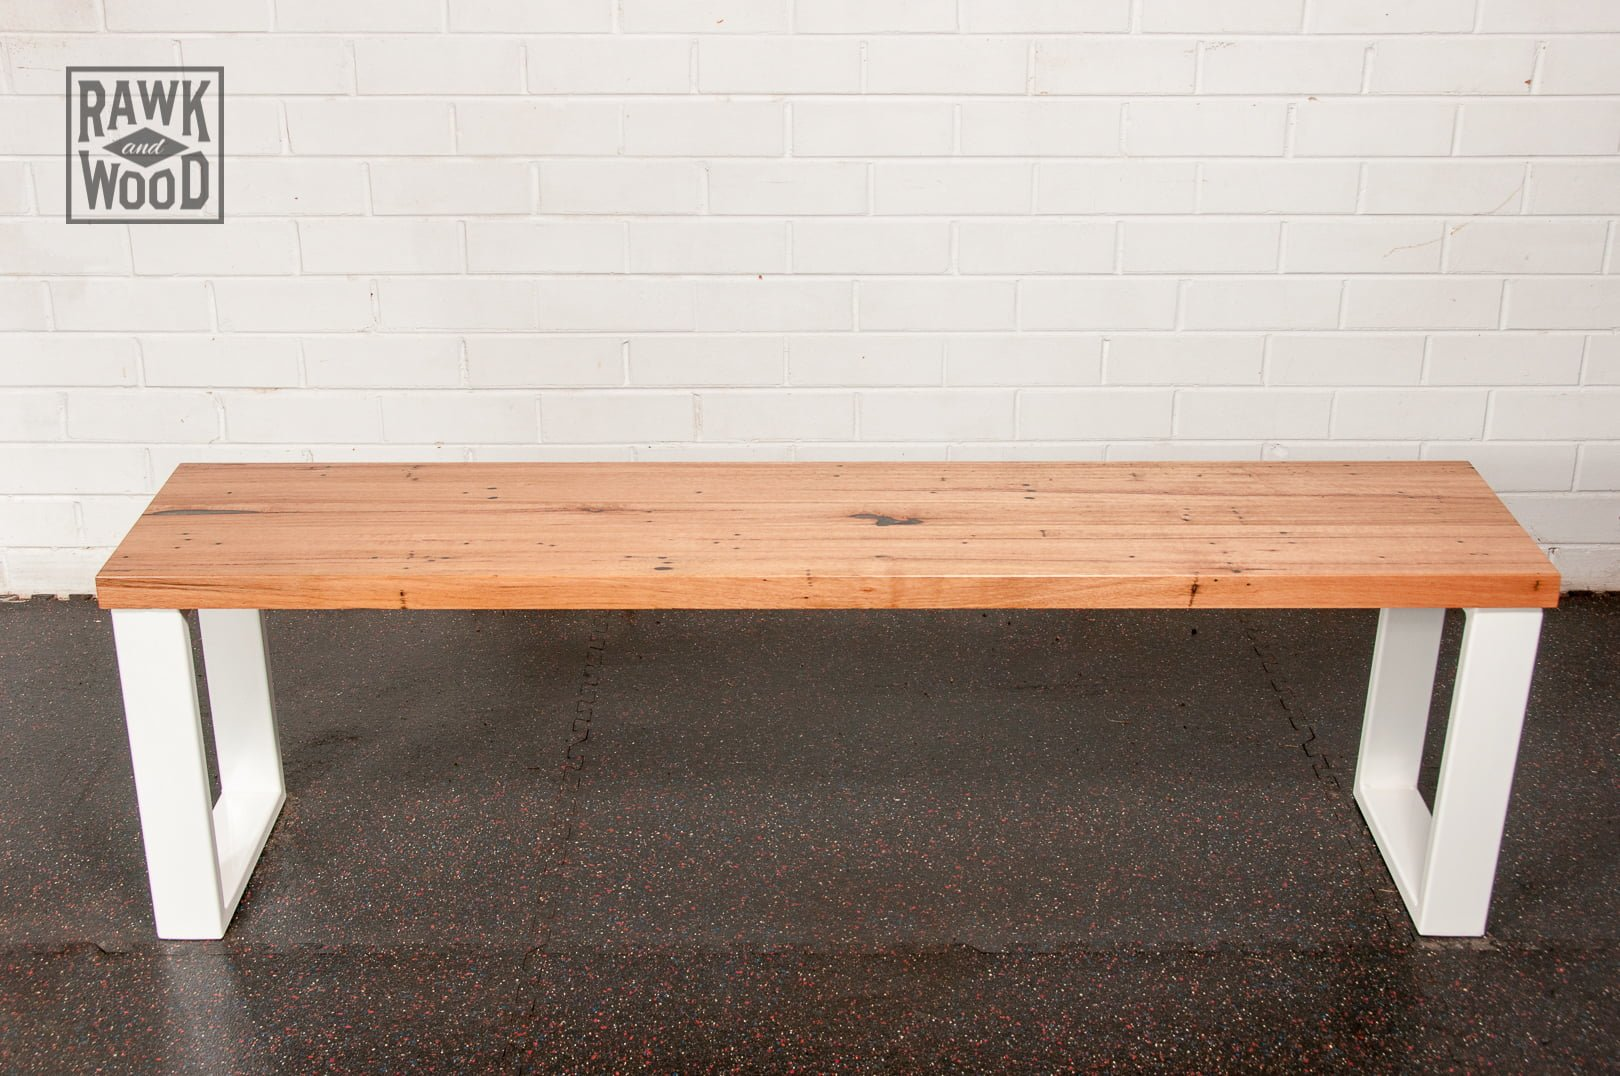 Recycled-Timber-Bench-Seat, made in Melbourne by Rawk and Wood